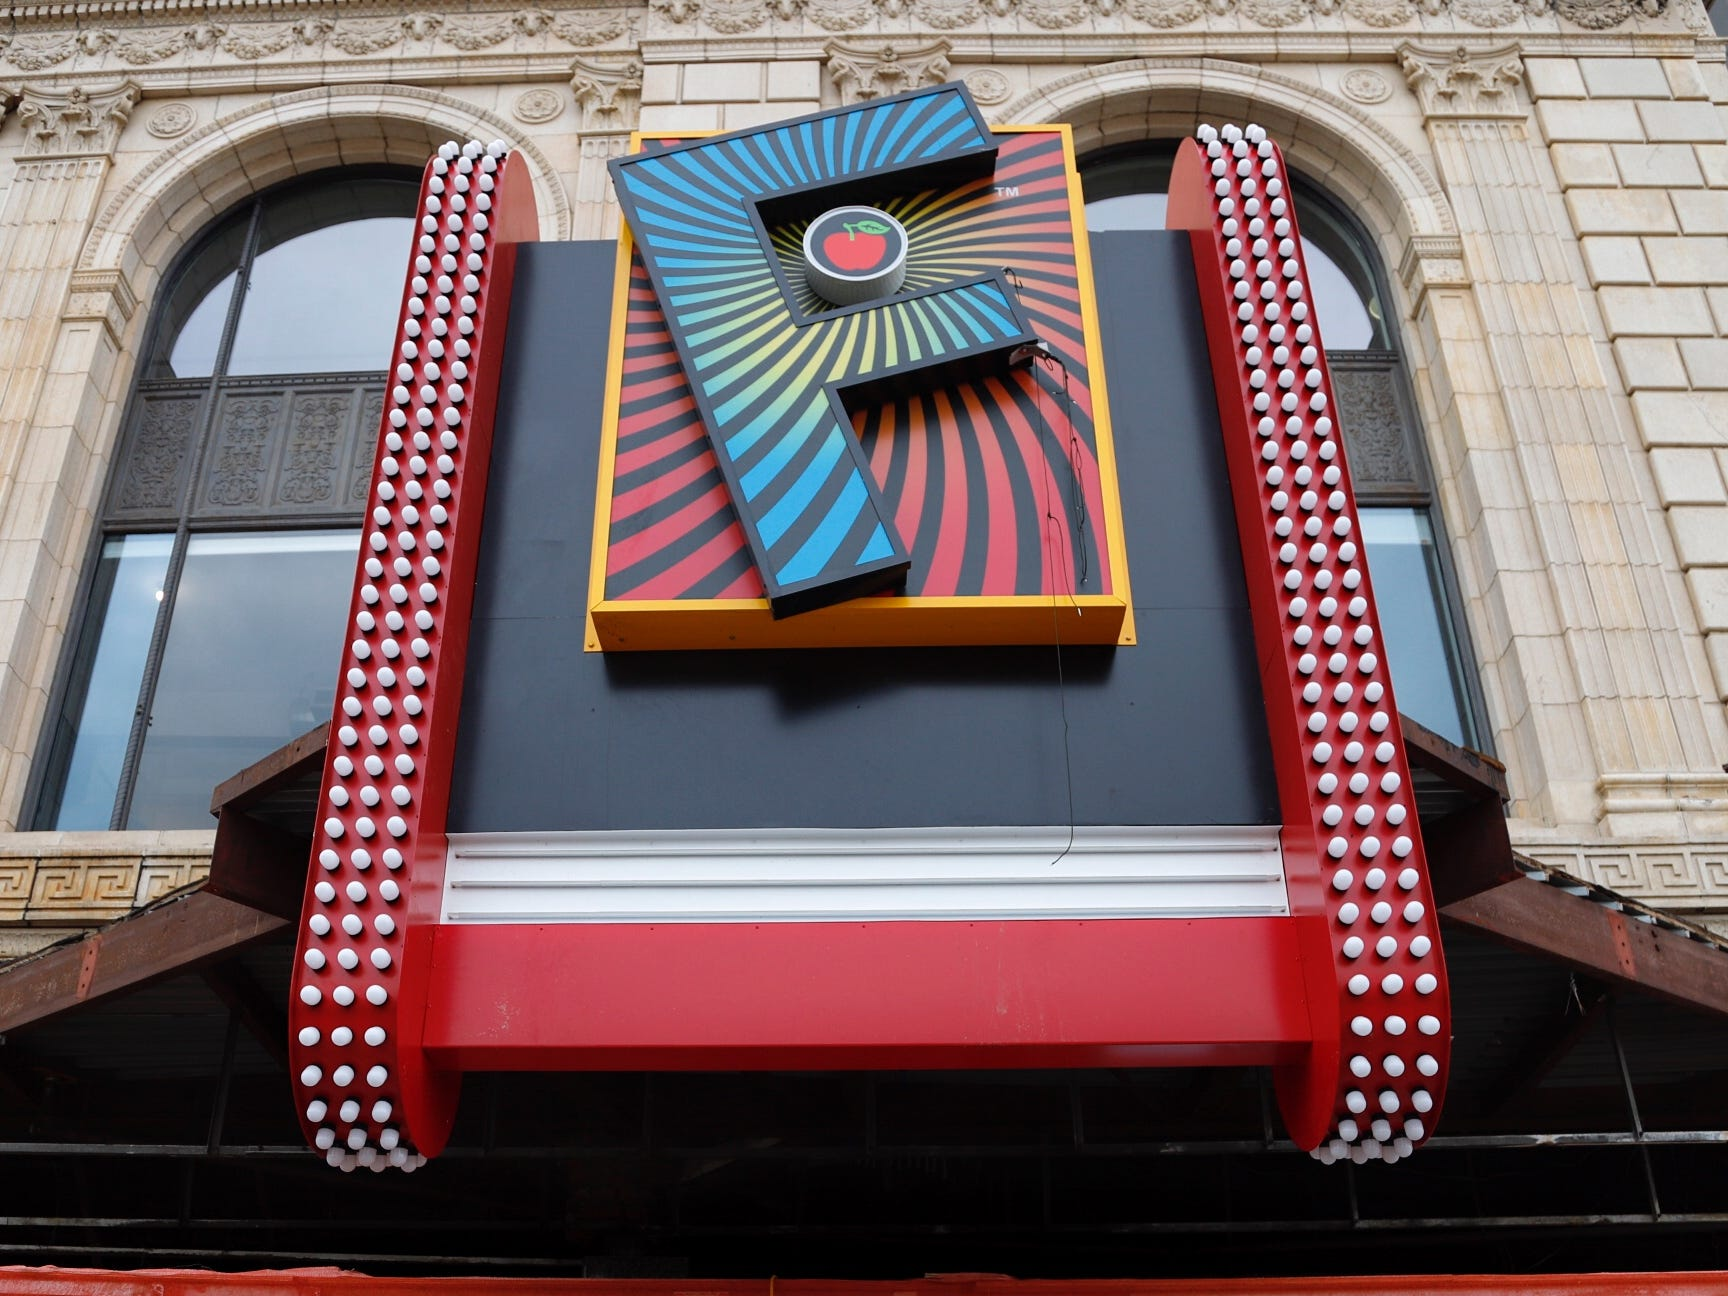 Fillmore Detroit's old marquee is gone, but new sign draws criticism